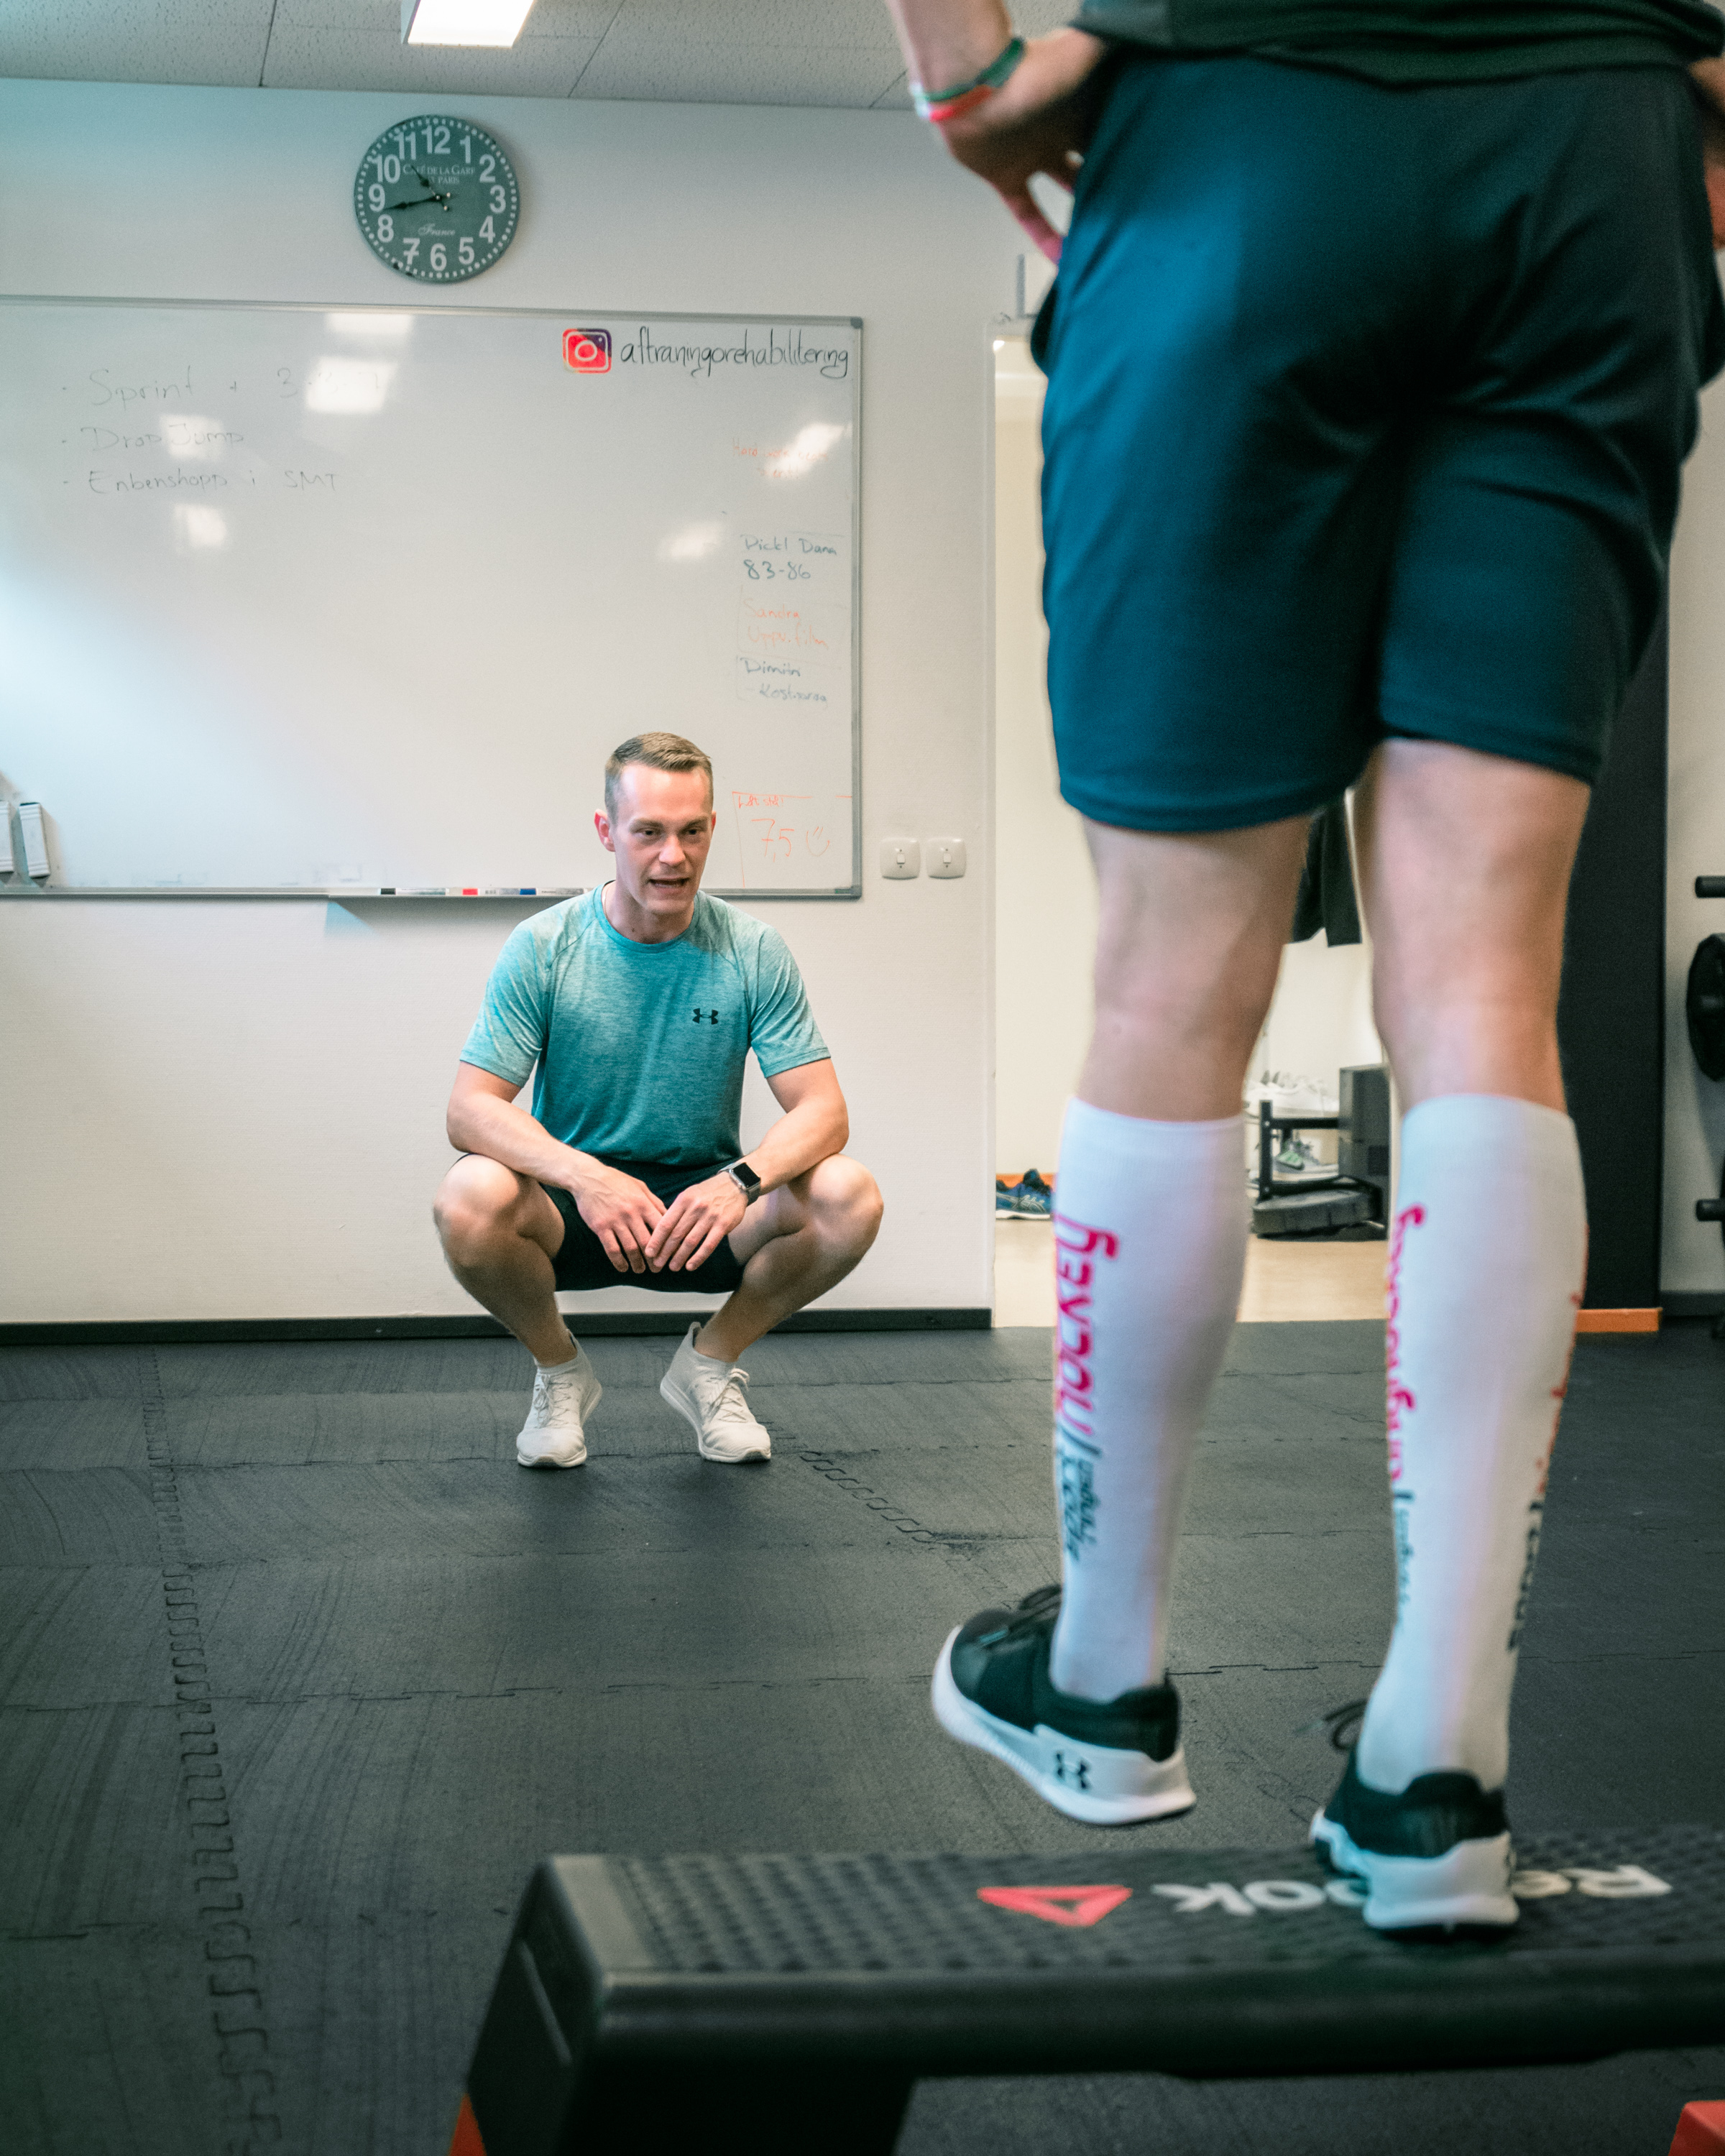 An image featuring Alfons in his gym instructing a professional athlete.